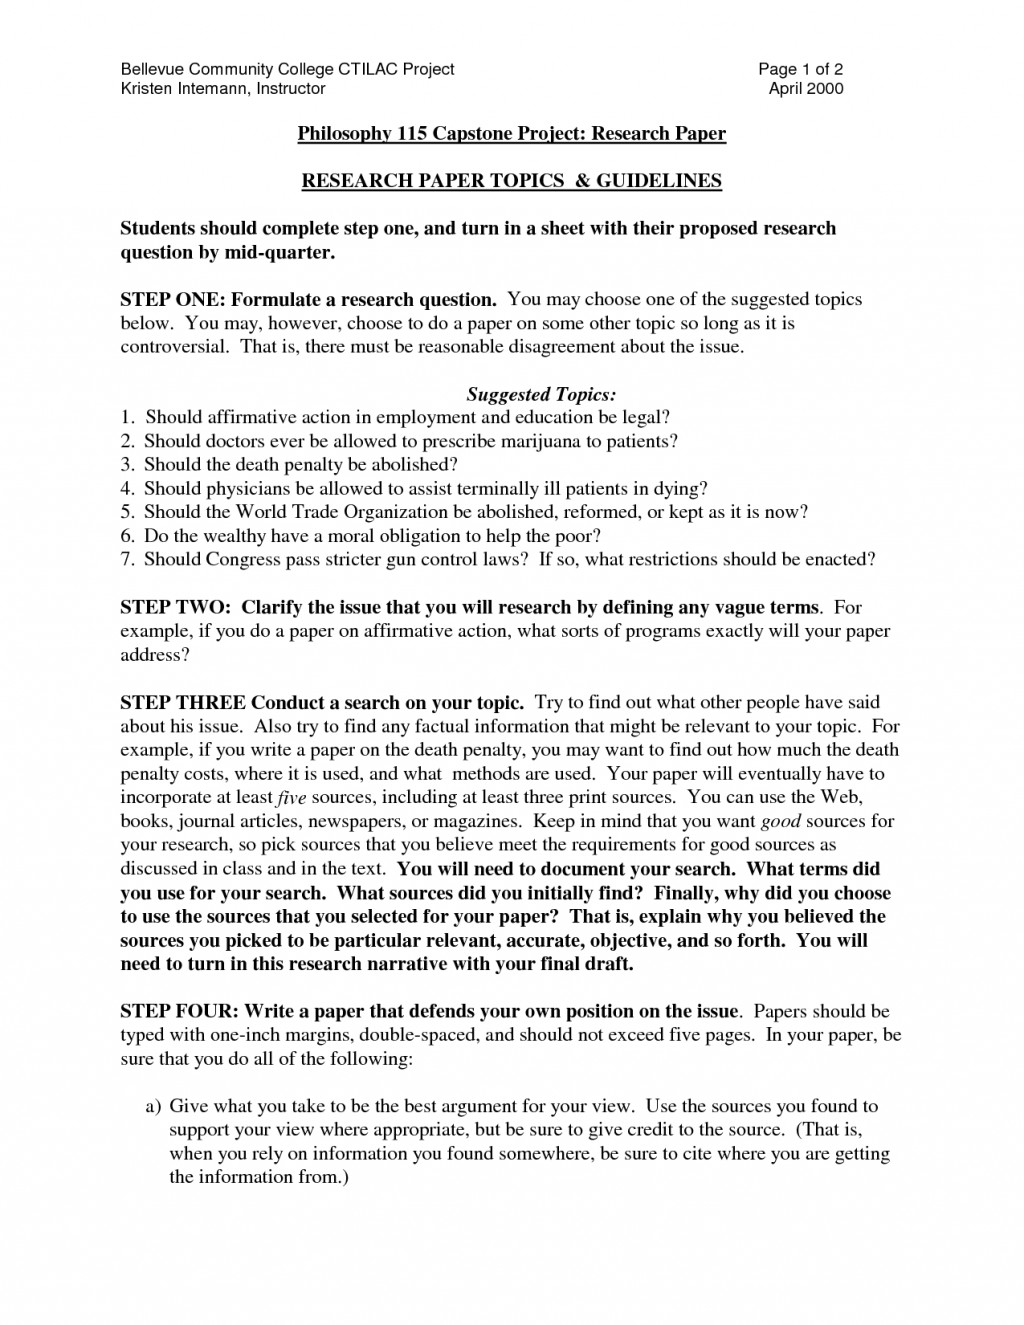 006 Buy Research Paper For College Remarkable A Cheap Large